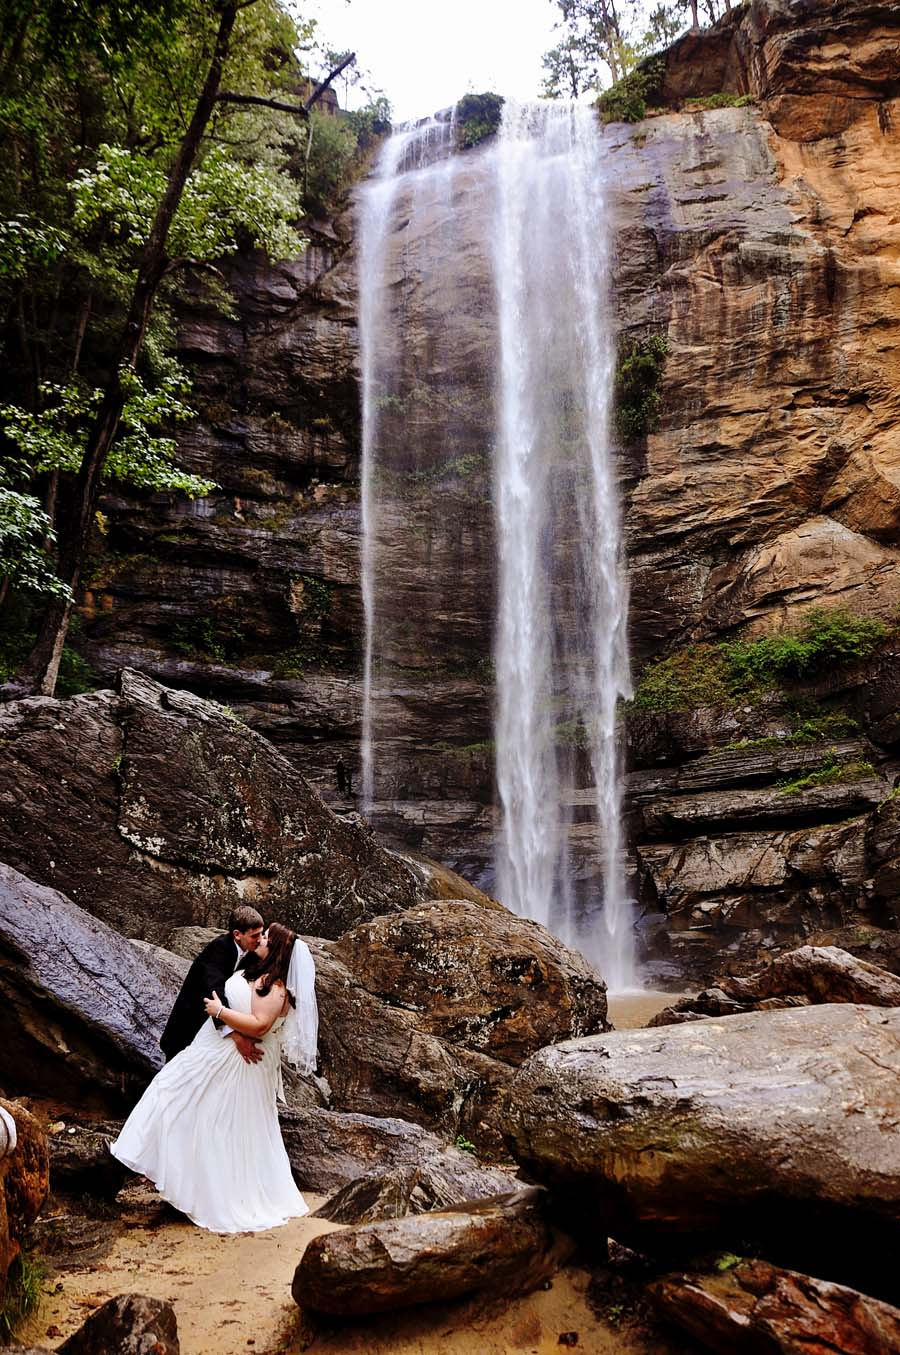 Waterfall Weddings | Waterfall Wedding | Waterfall Weddings in Georgia